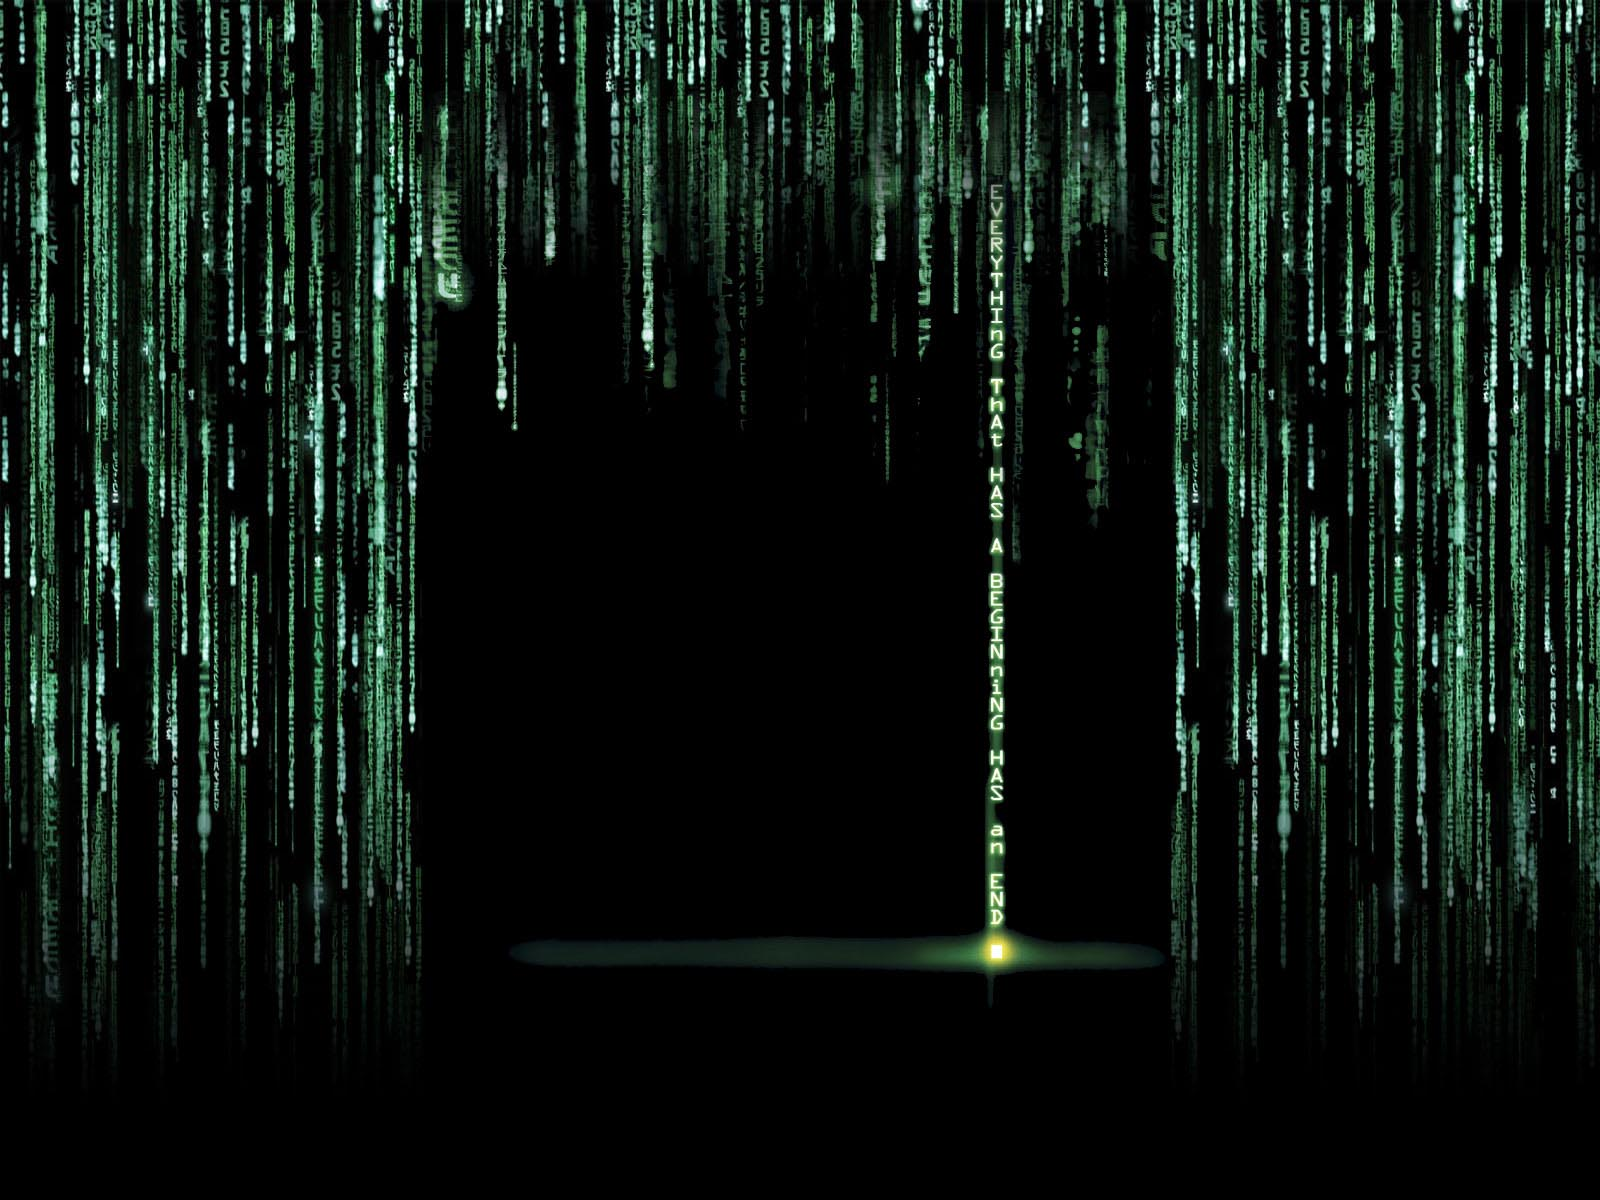 Matrix wallpapers wallpaper cave matrix wallpapers and backgrounds w8themes voltagebd Choice Image